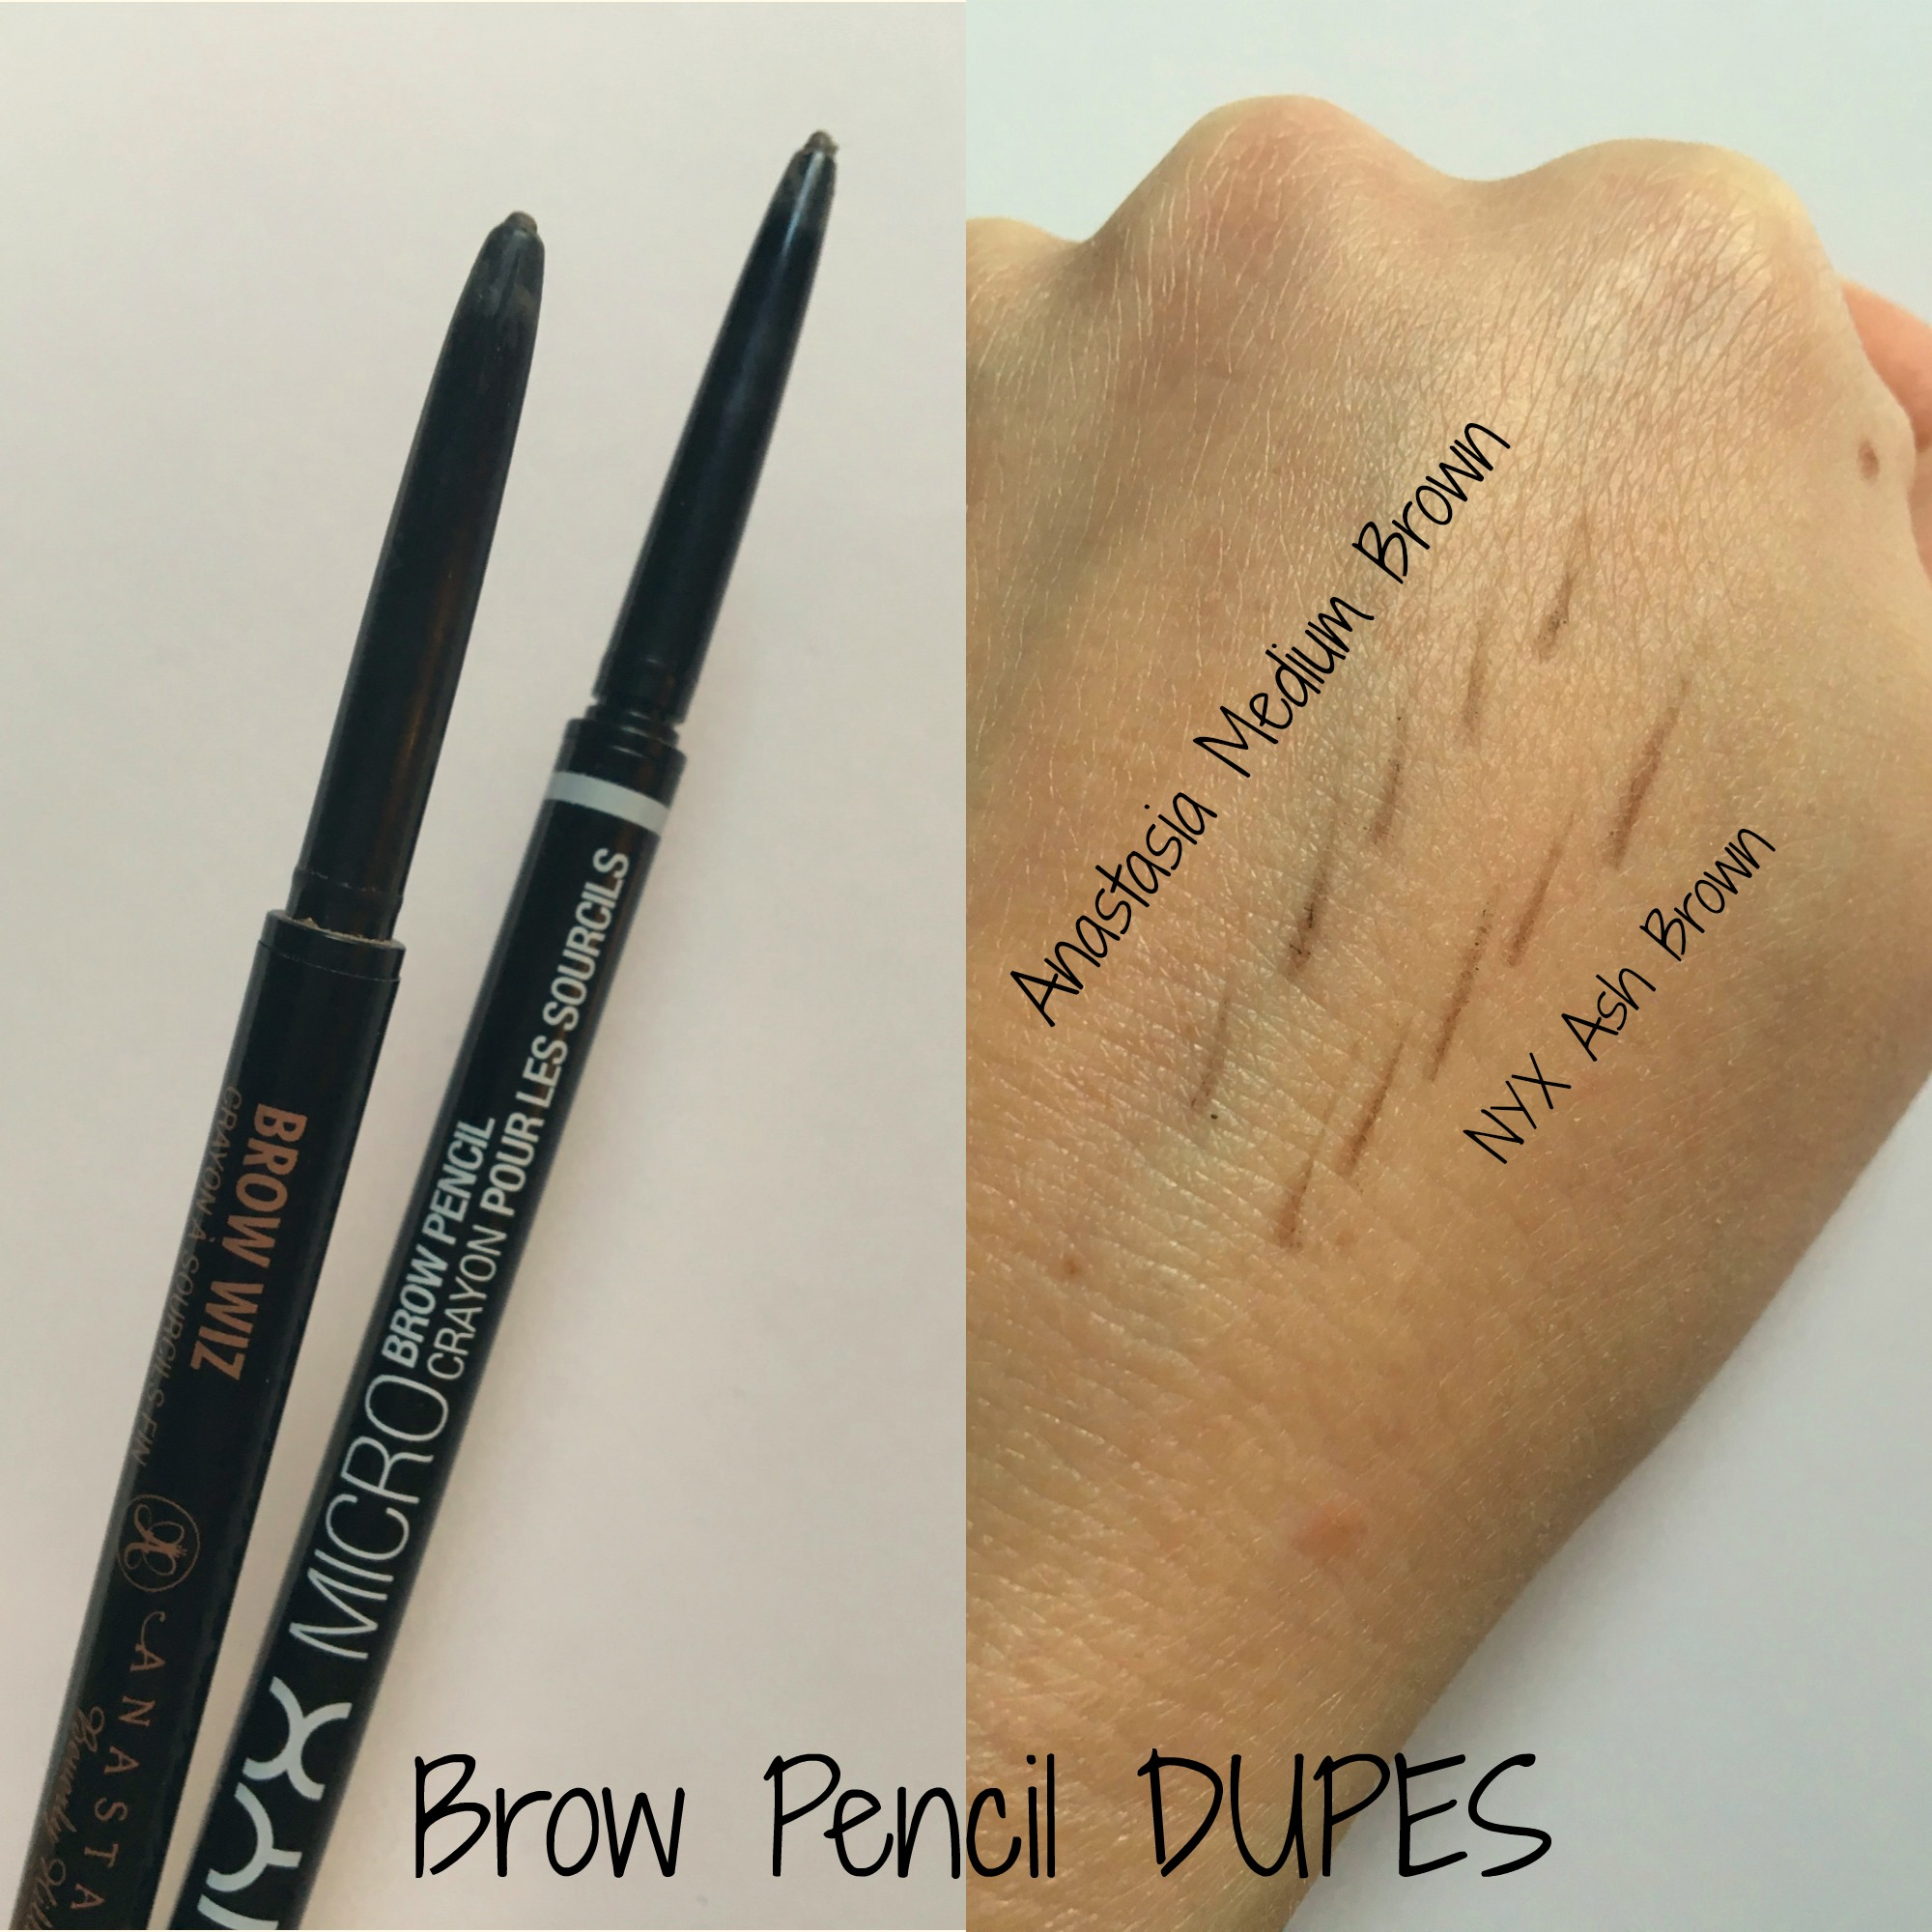 Micro Brow Pencil by NYX Professional Makeup #14